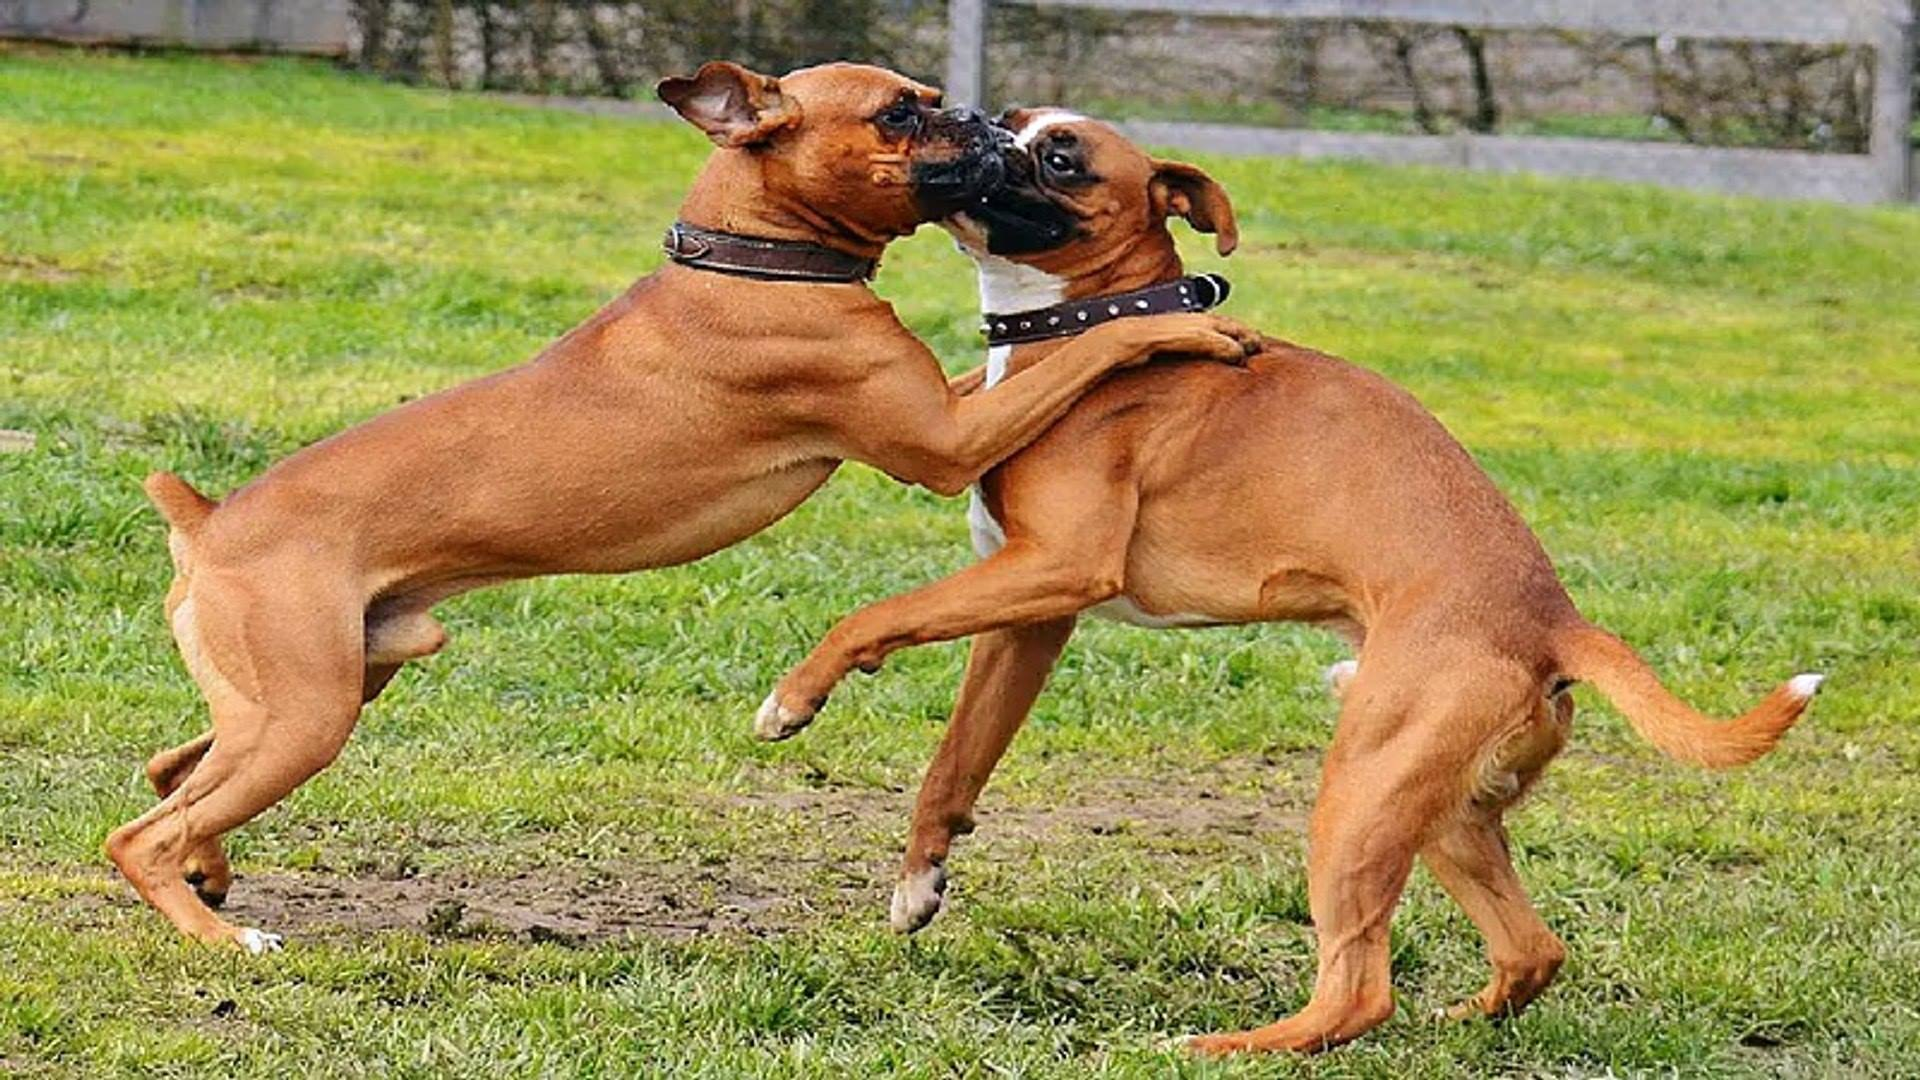 boxer dog playing animal pet